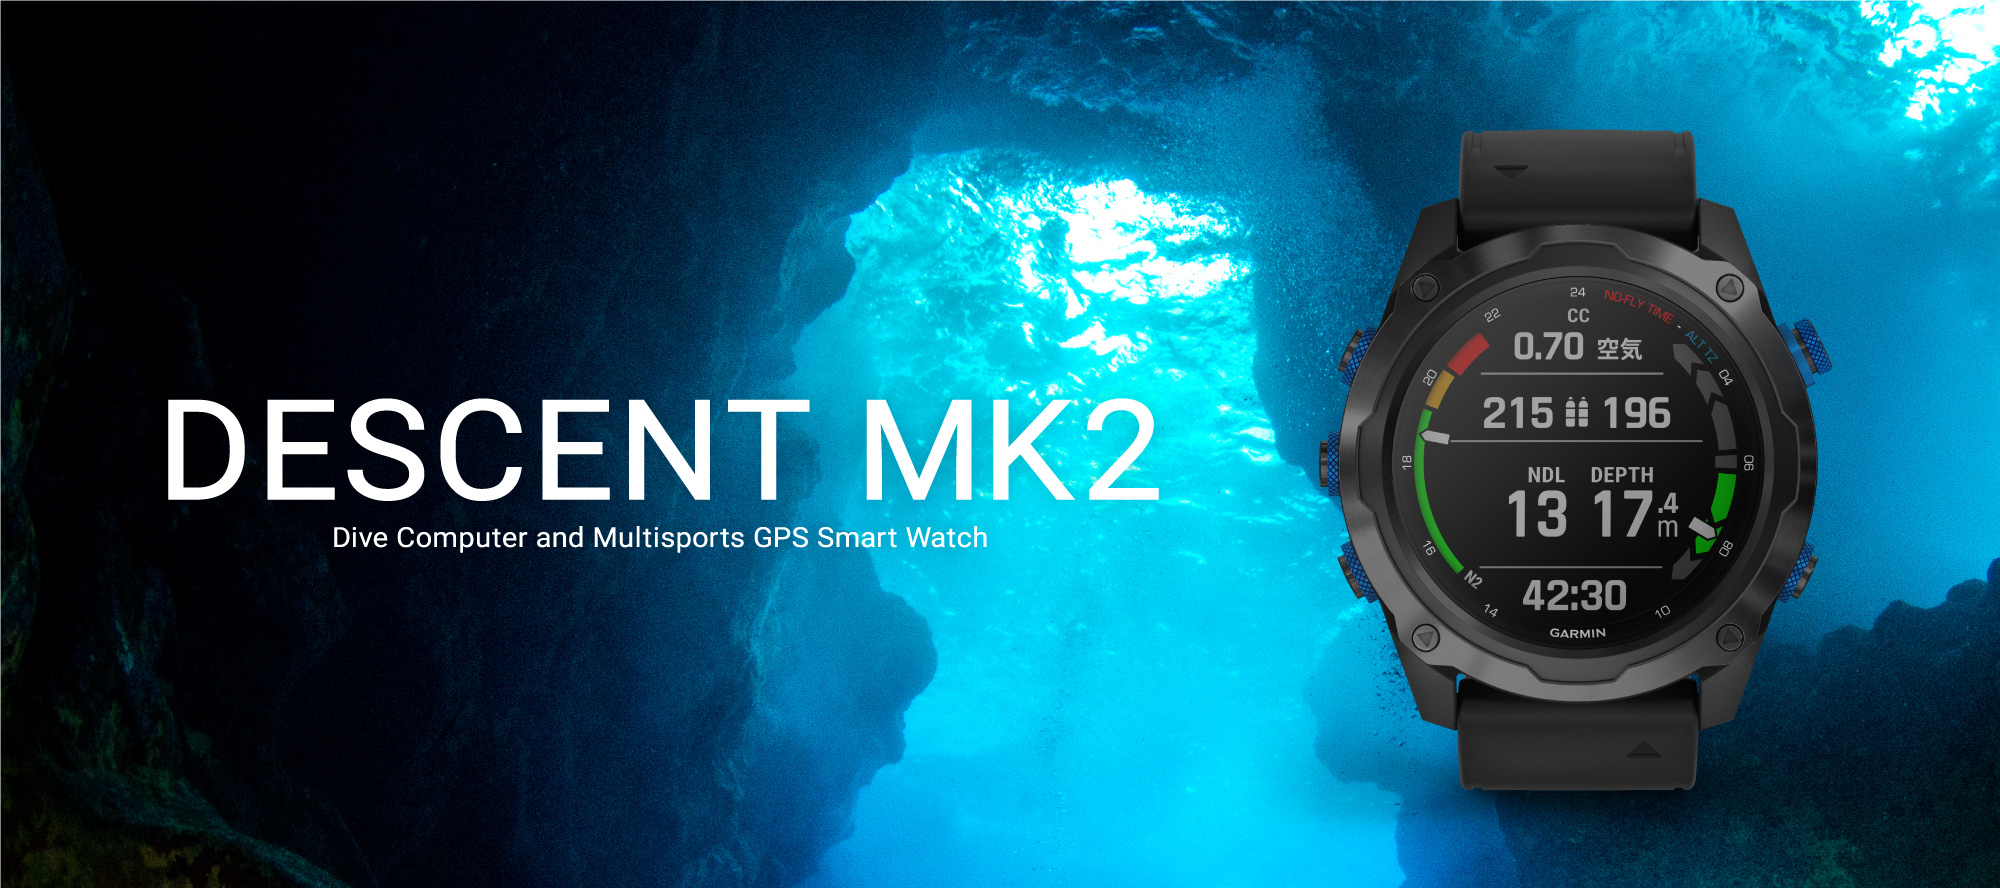 Descent Mk2 - EVOLUTION OF DIVING SAFETY